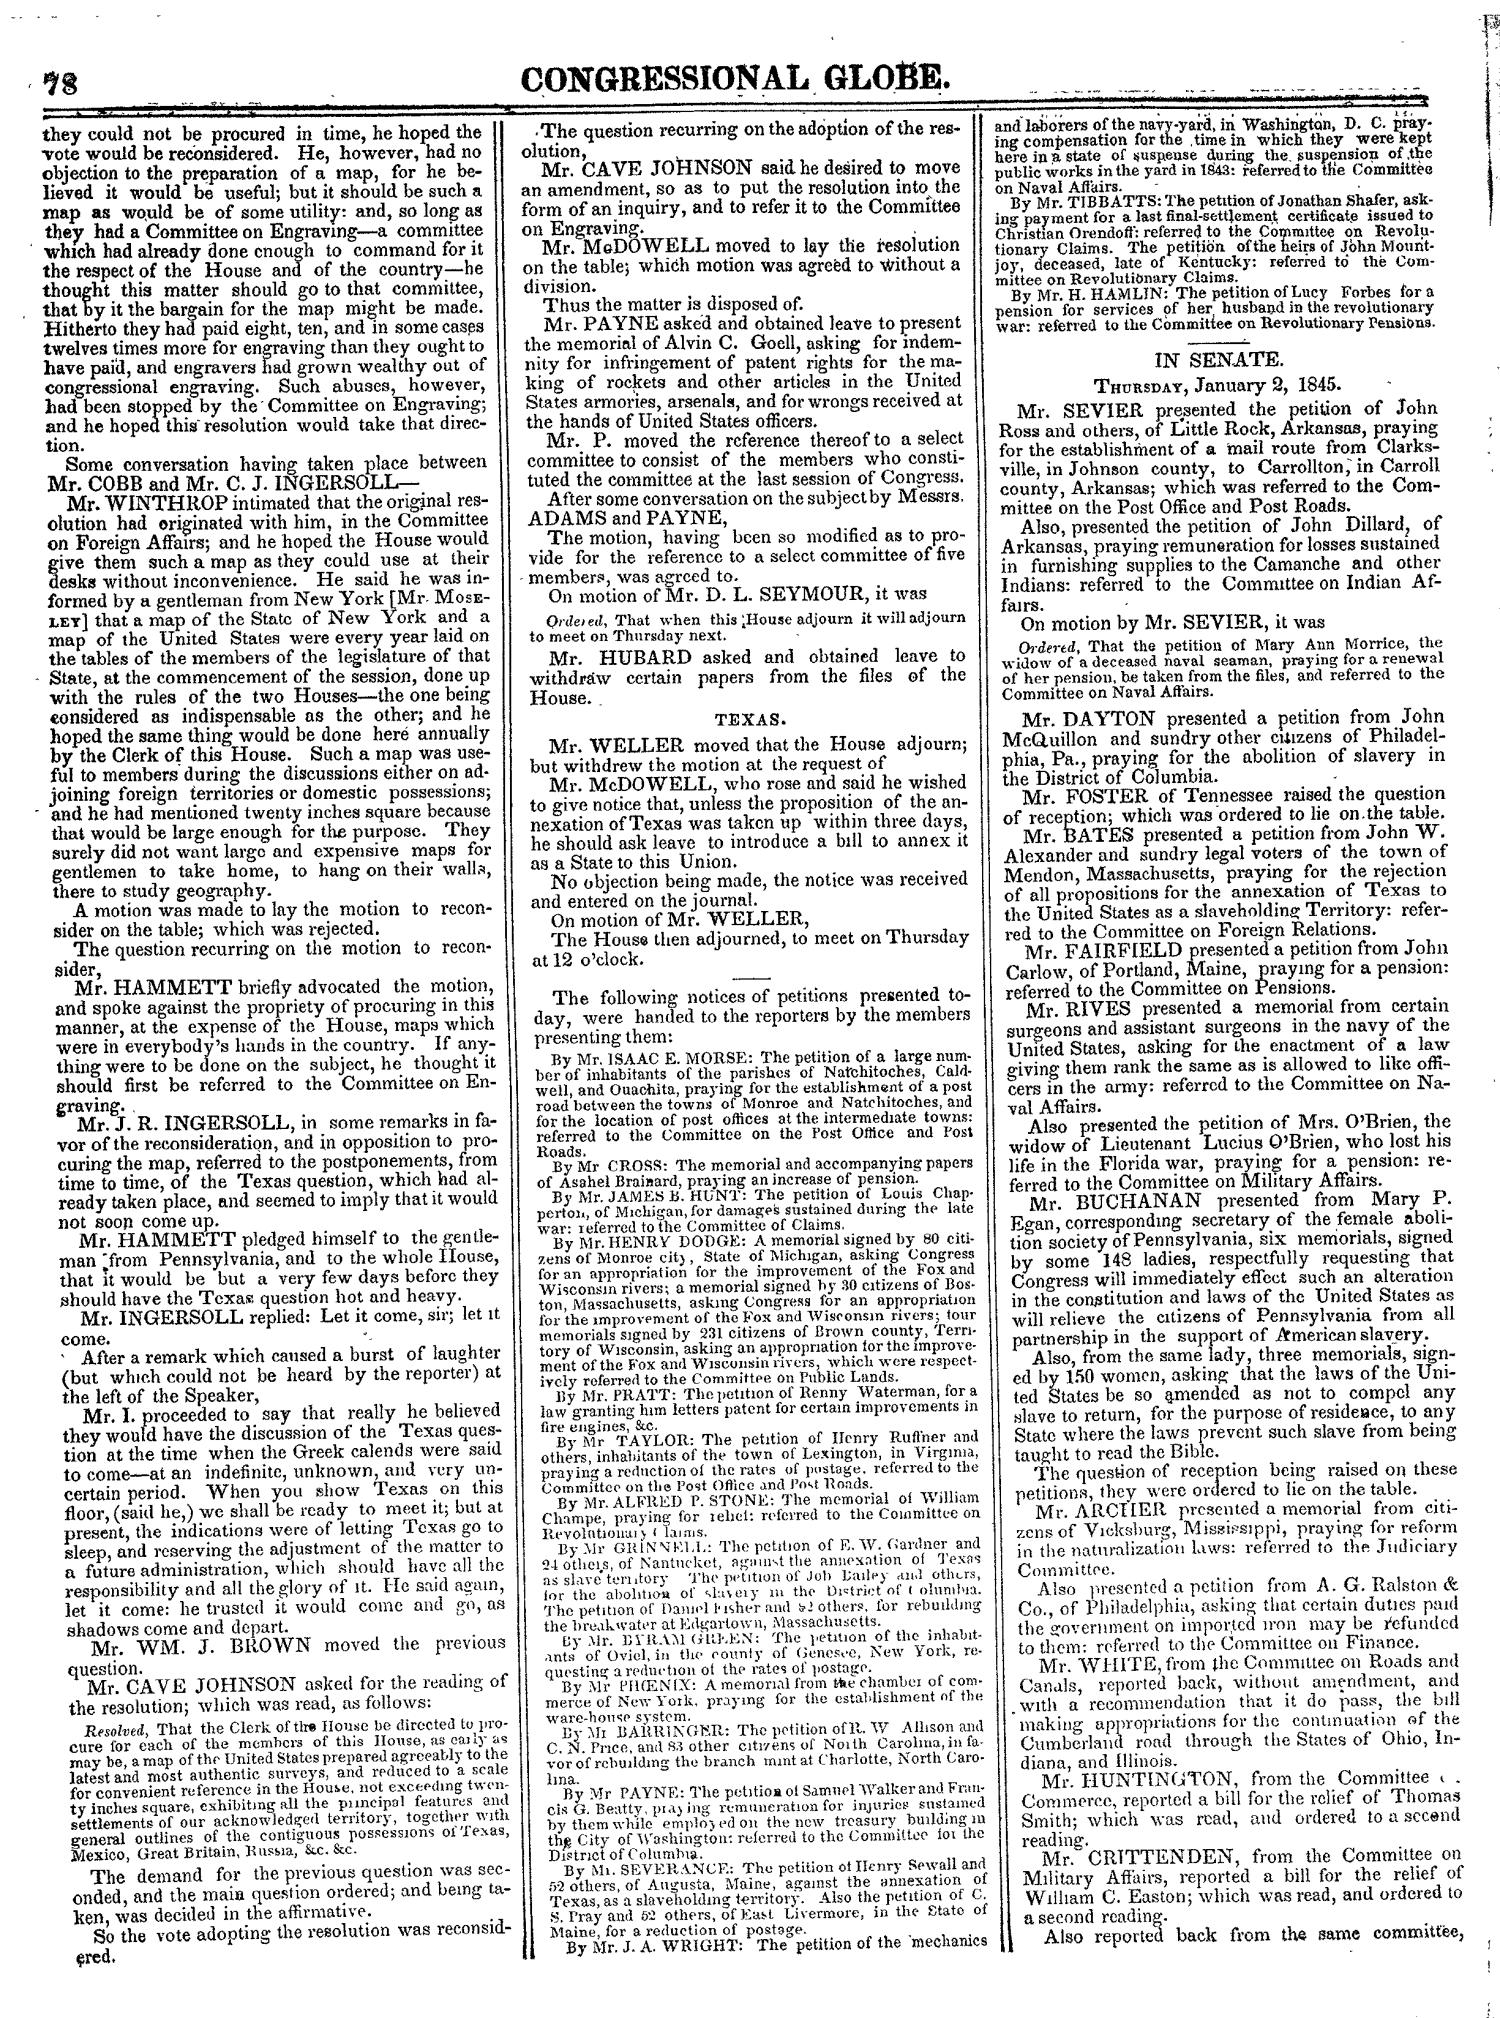 The Congressional Globe, Volume 14: Twenty-Eighth Congress, Second Session                                                                                                      78